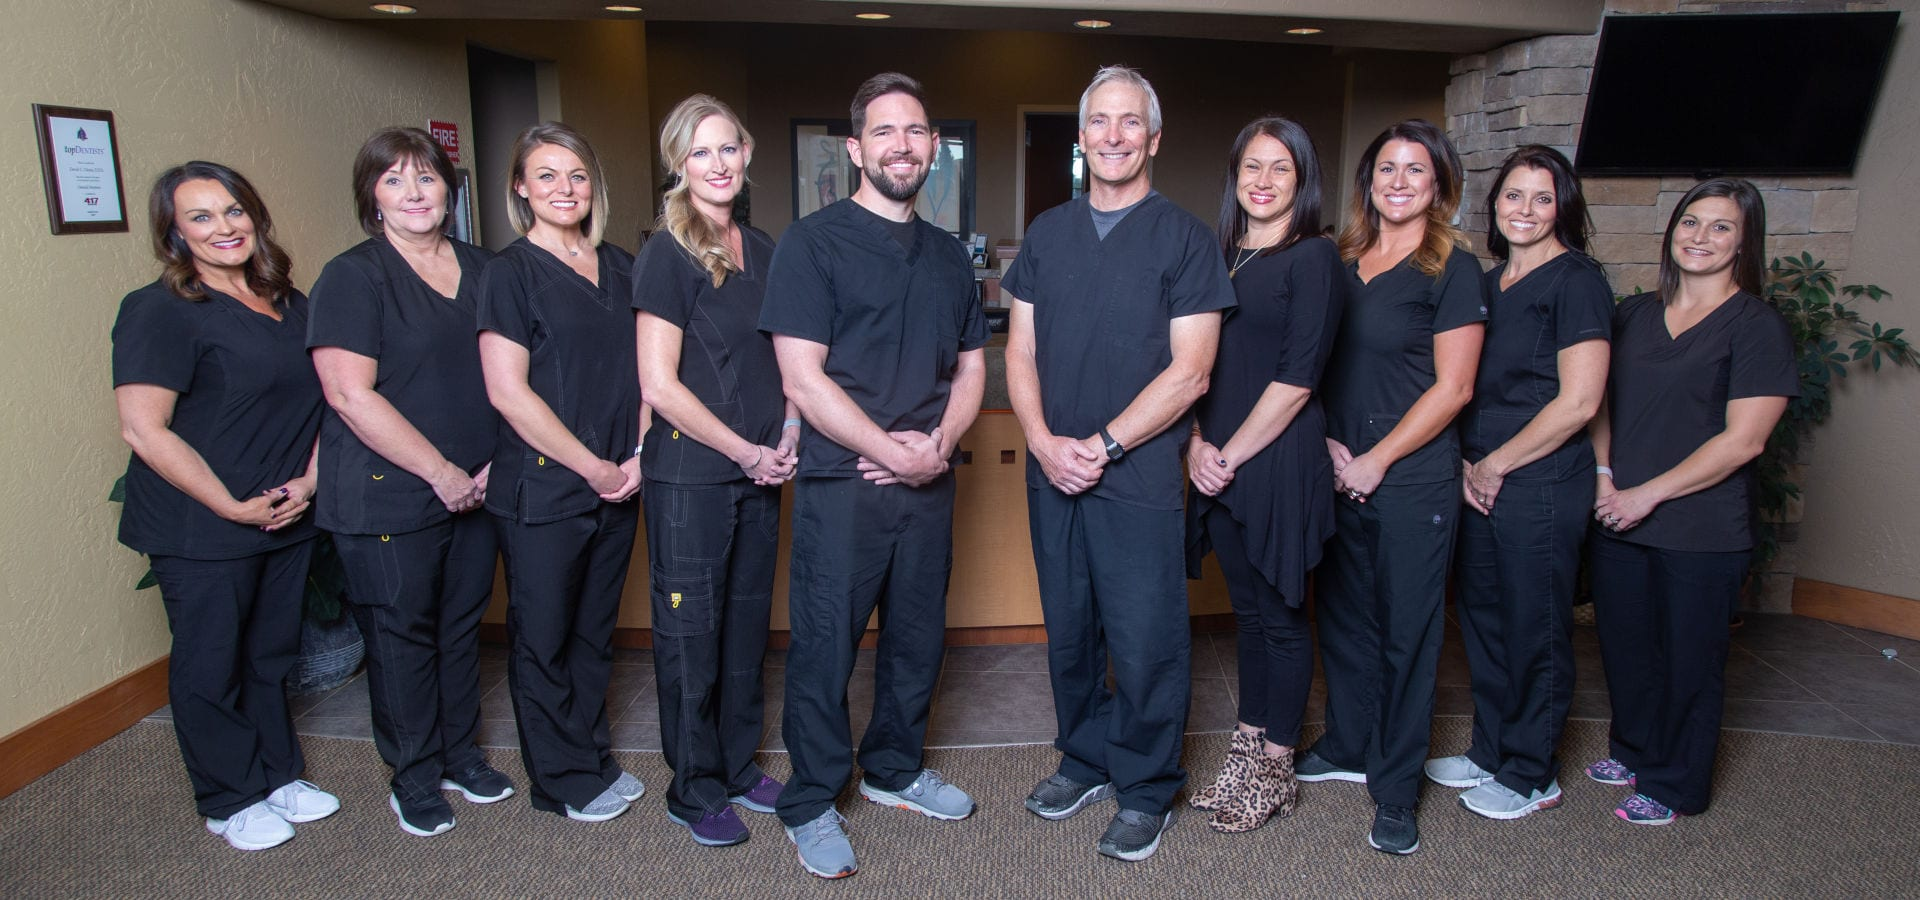 Dental office staff stand in front of the reception counter to pose for their photo, dentists at front center.